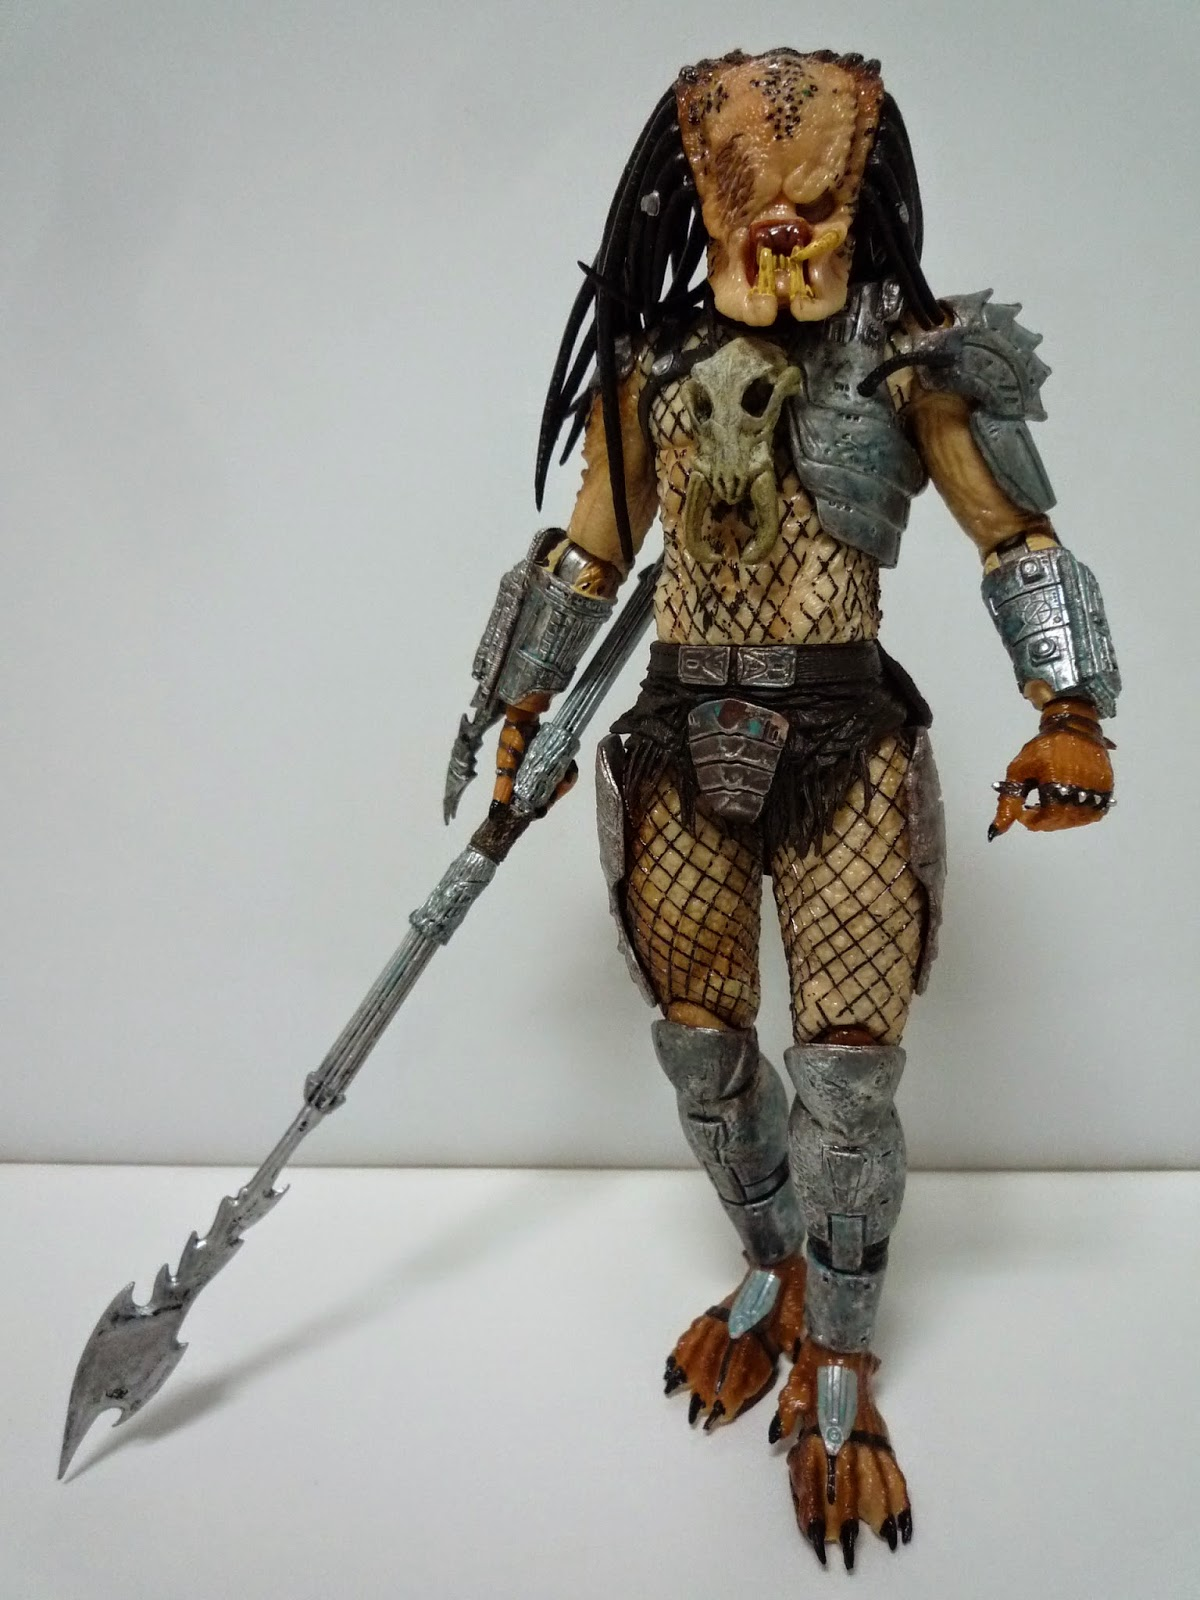 Romantic 18cm Neca Aliens Action Figure Ricco Frost Private Figure Toy With Weapon Helmet Alien Vs Action & Toy Figures Predator Avp Model Doll Cheap Sales 50%